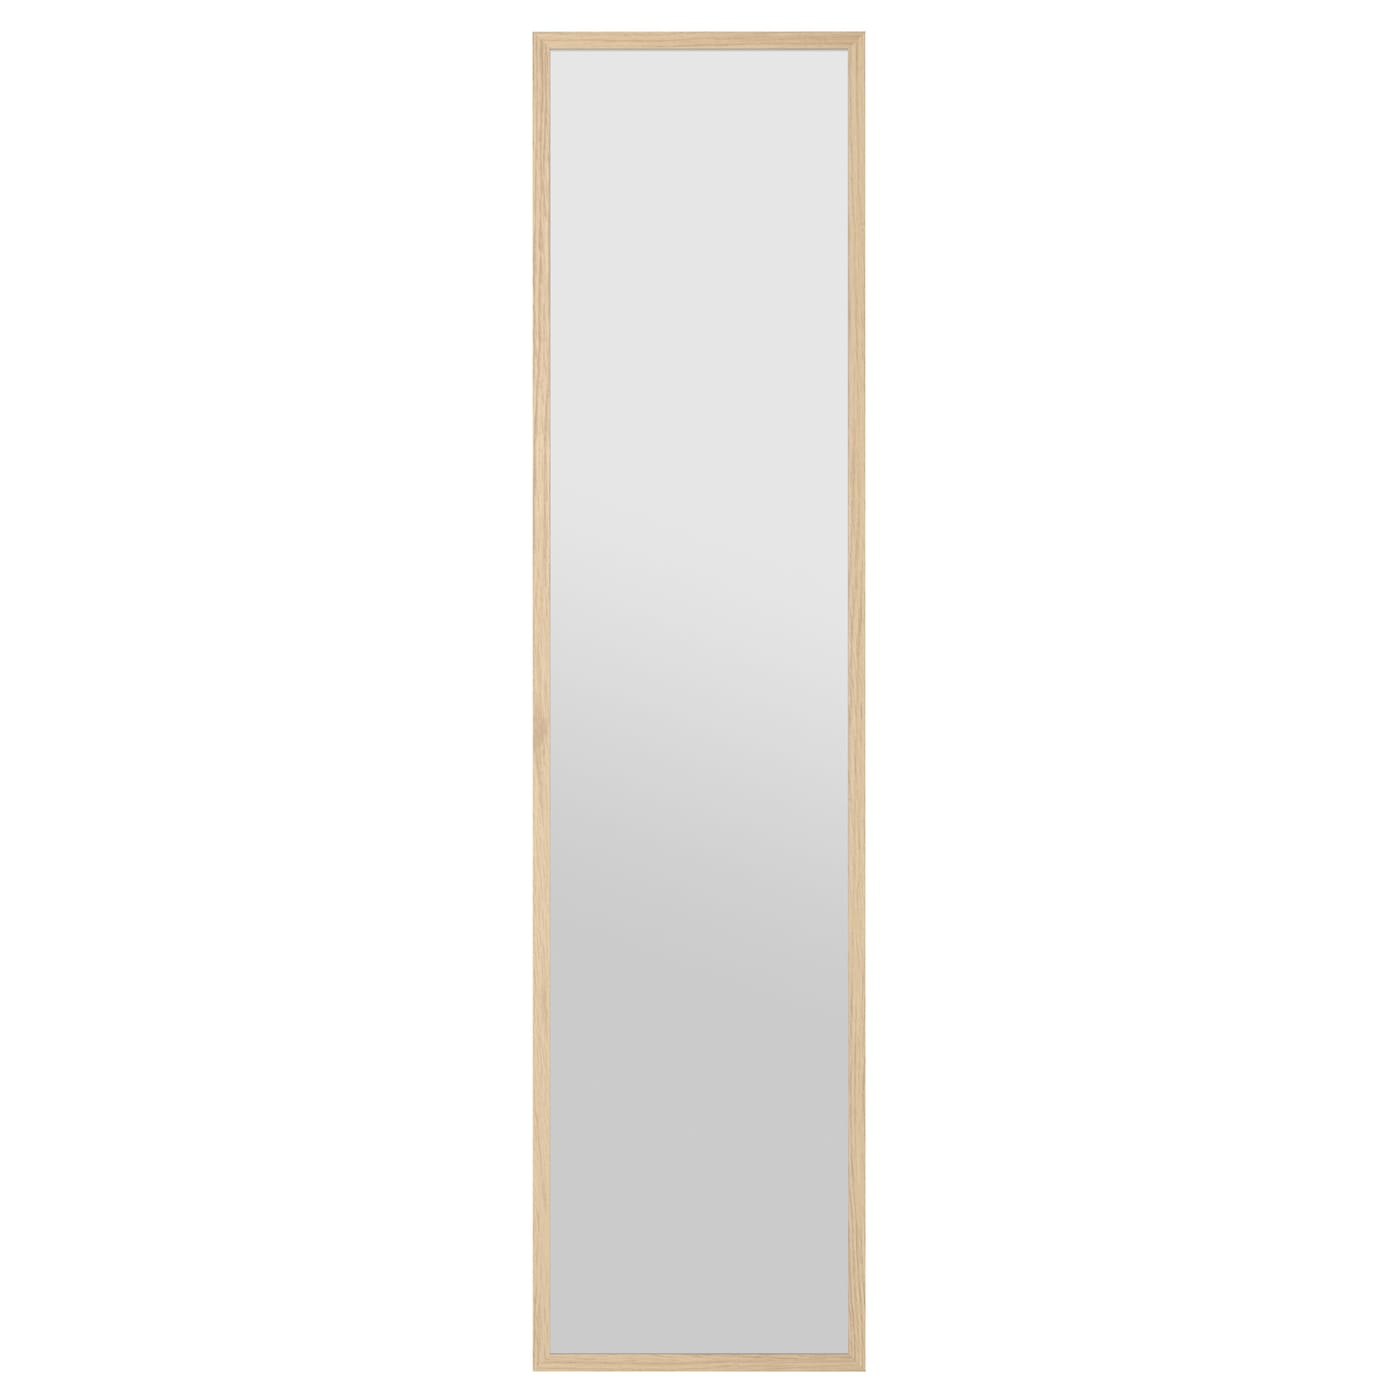 Stave mirror white stained oak effect 40x160 cm ikea for Miroir 140 x 70